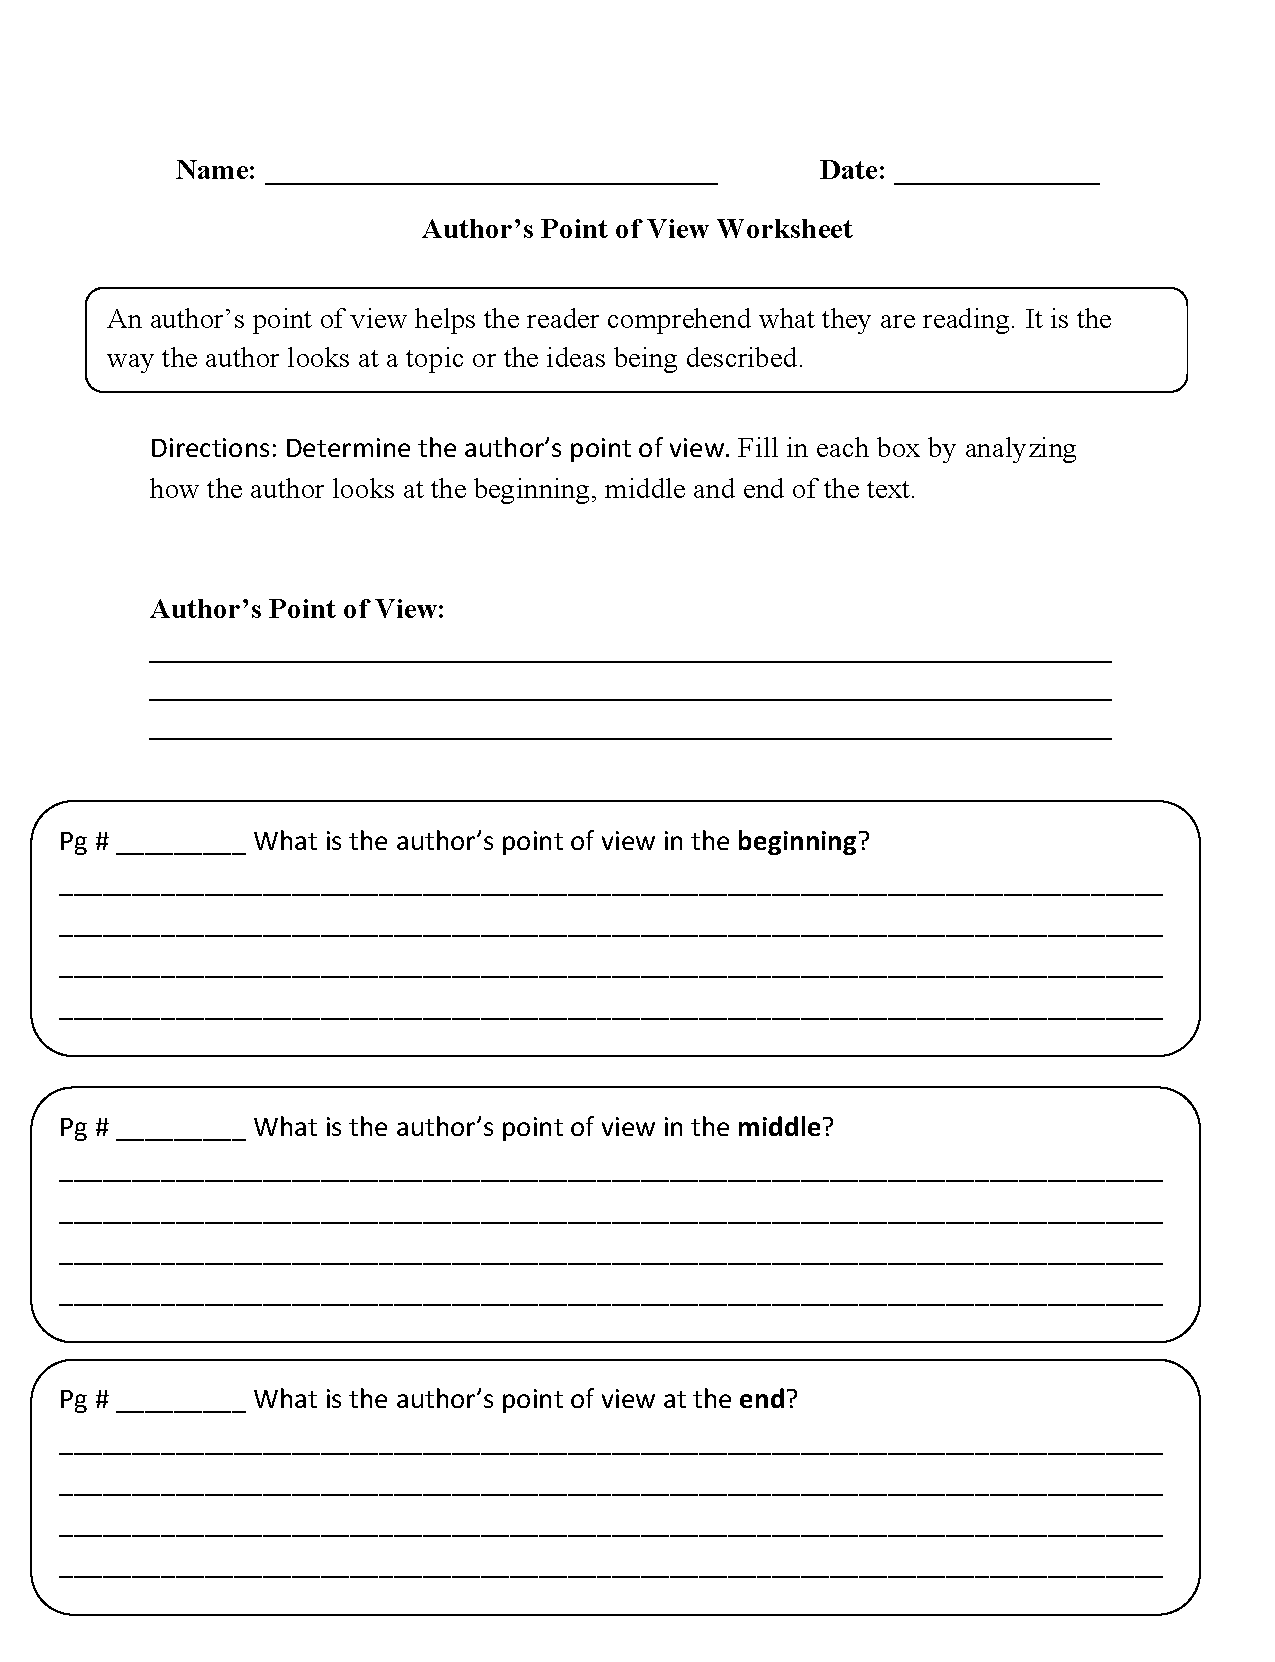 Worksheets Free Printable Reading Worksheets For 3rd Grade englishlinx com point of view worksheets worksheets